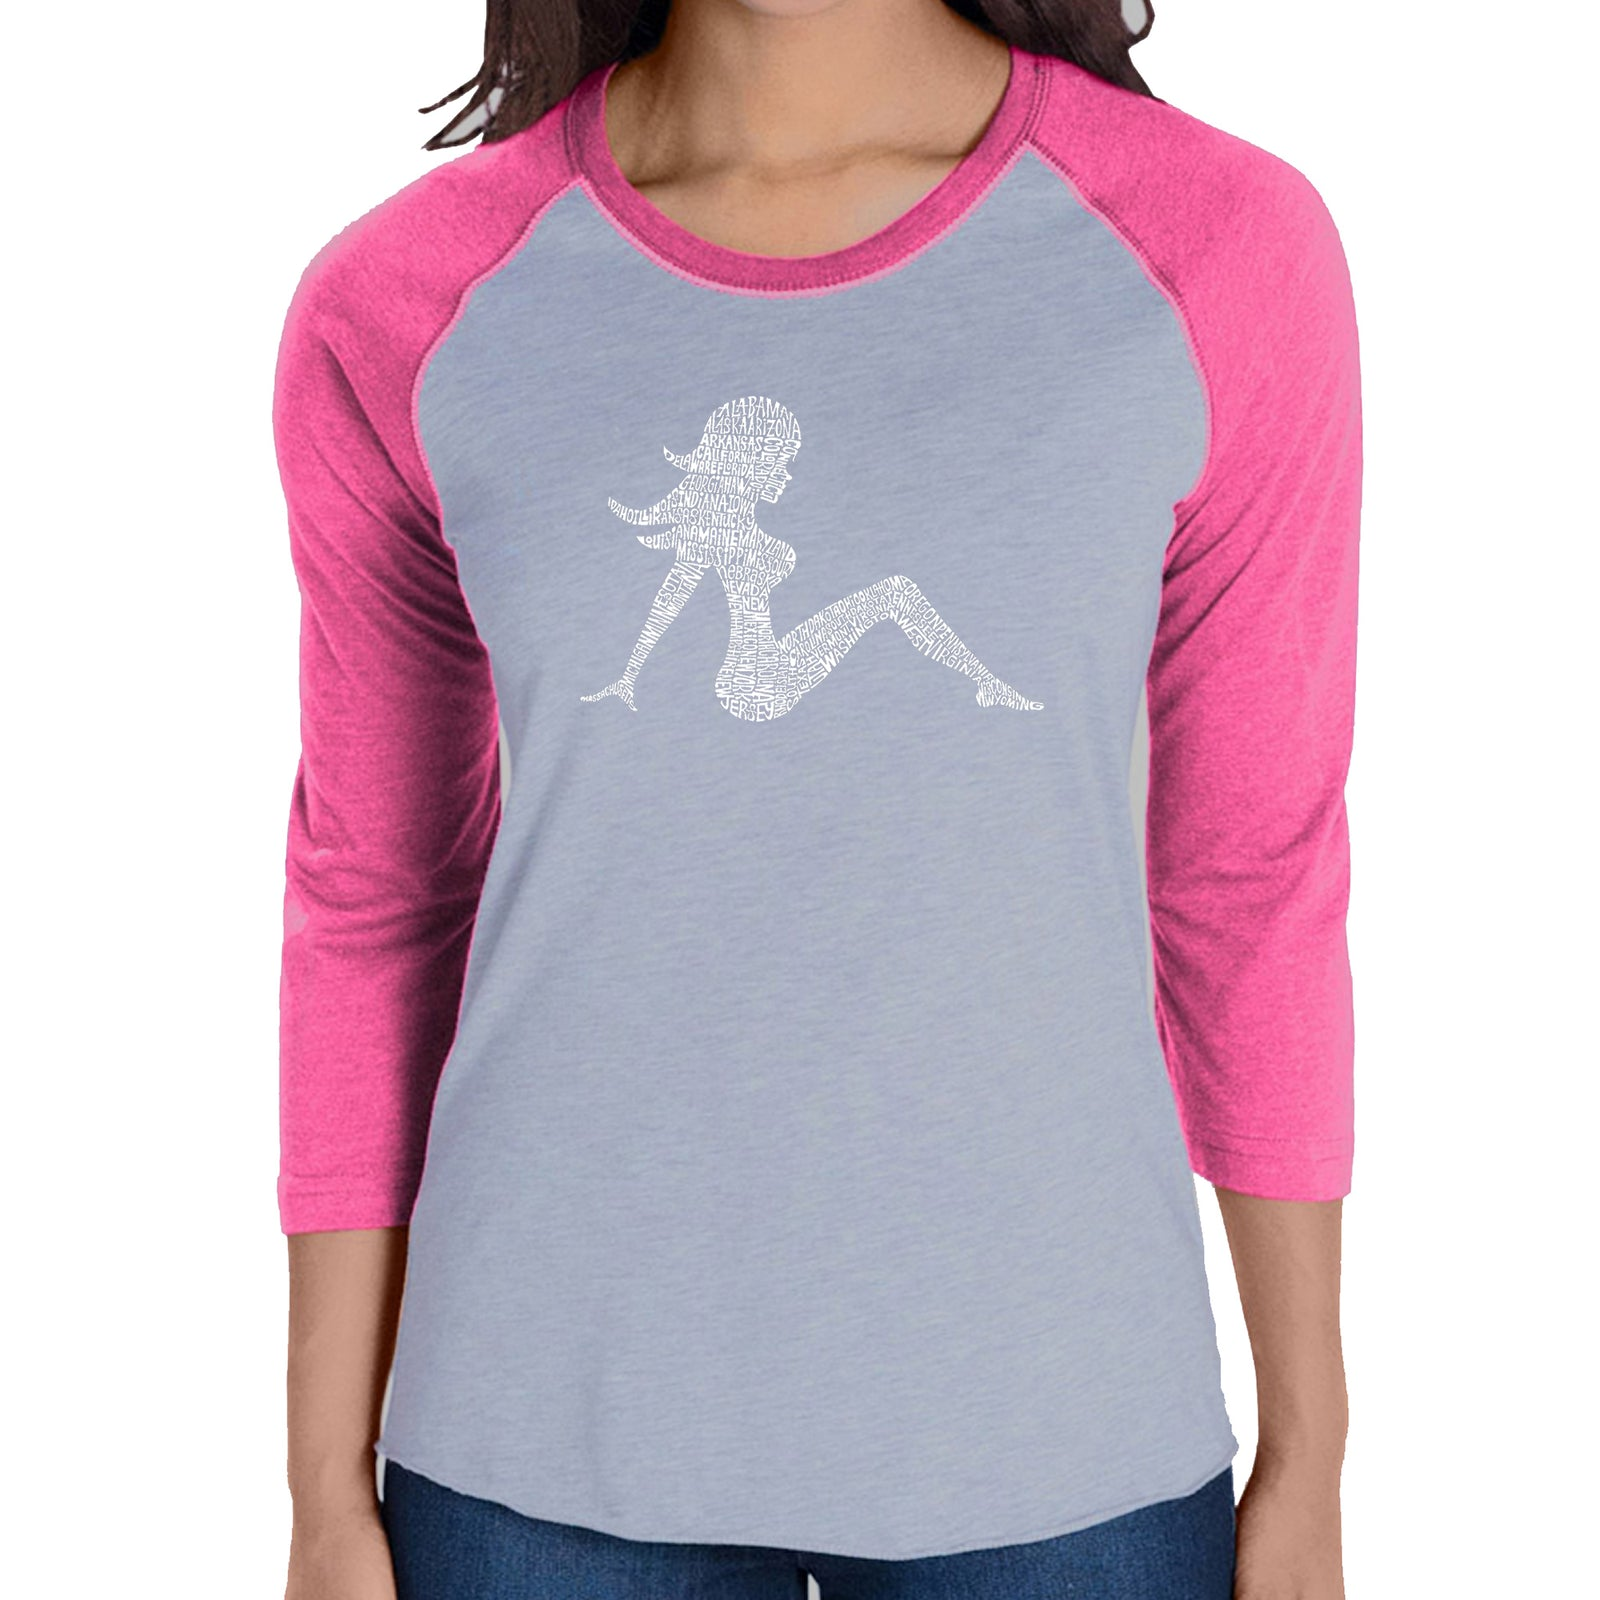 Women's Raglan Baseball Word Art T-shirt - MUDFLAP GIRL